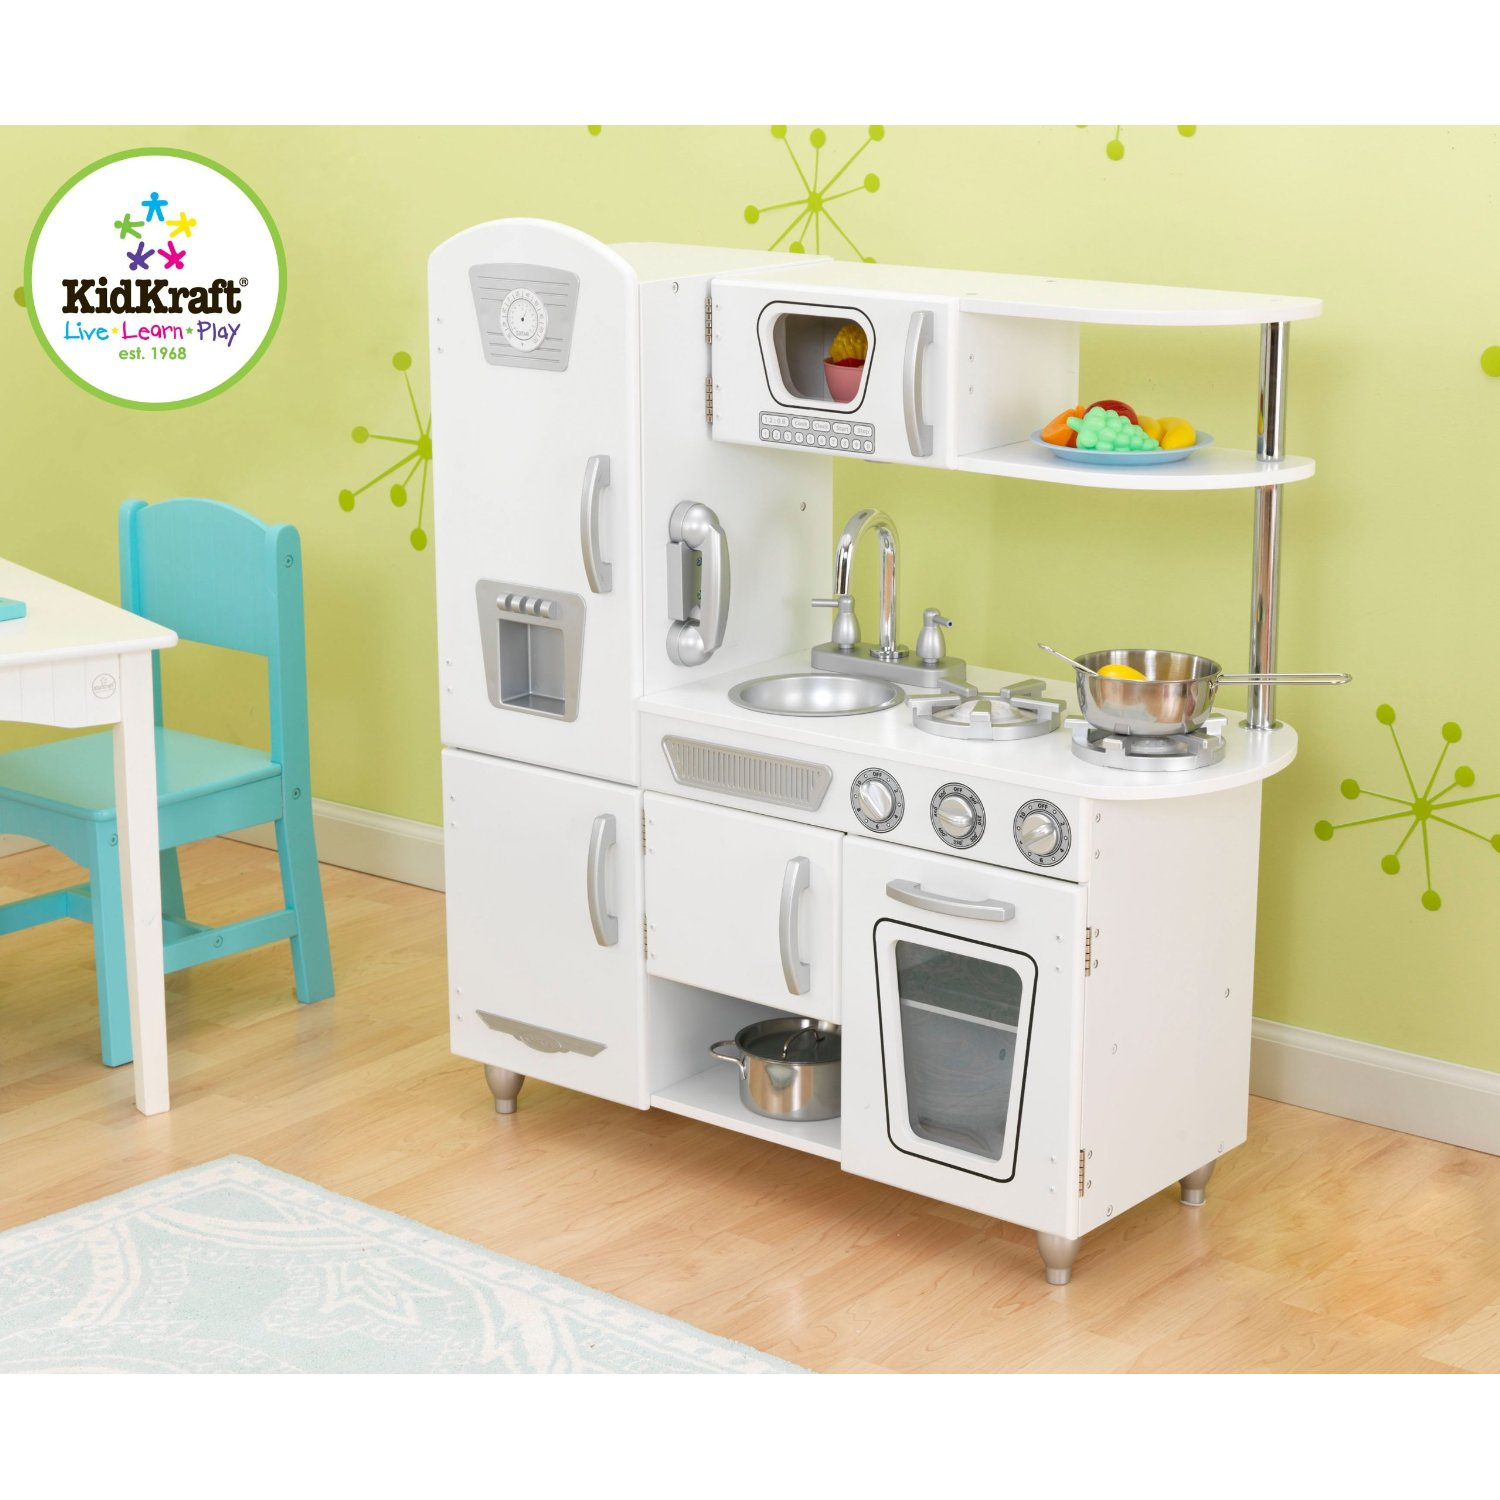 kidkraft kitchen set amazon kidkraft kitchen set amazon com kidkraft